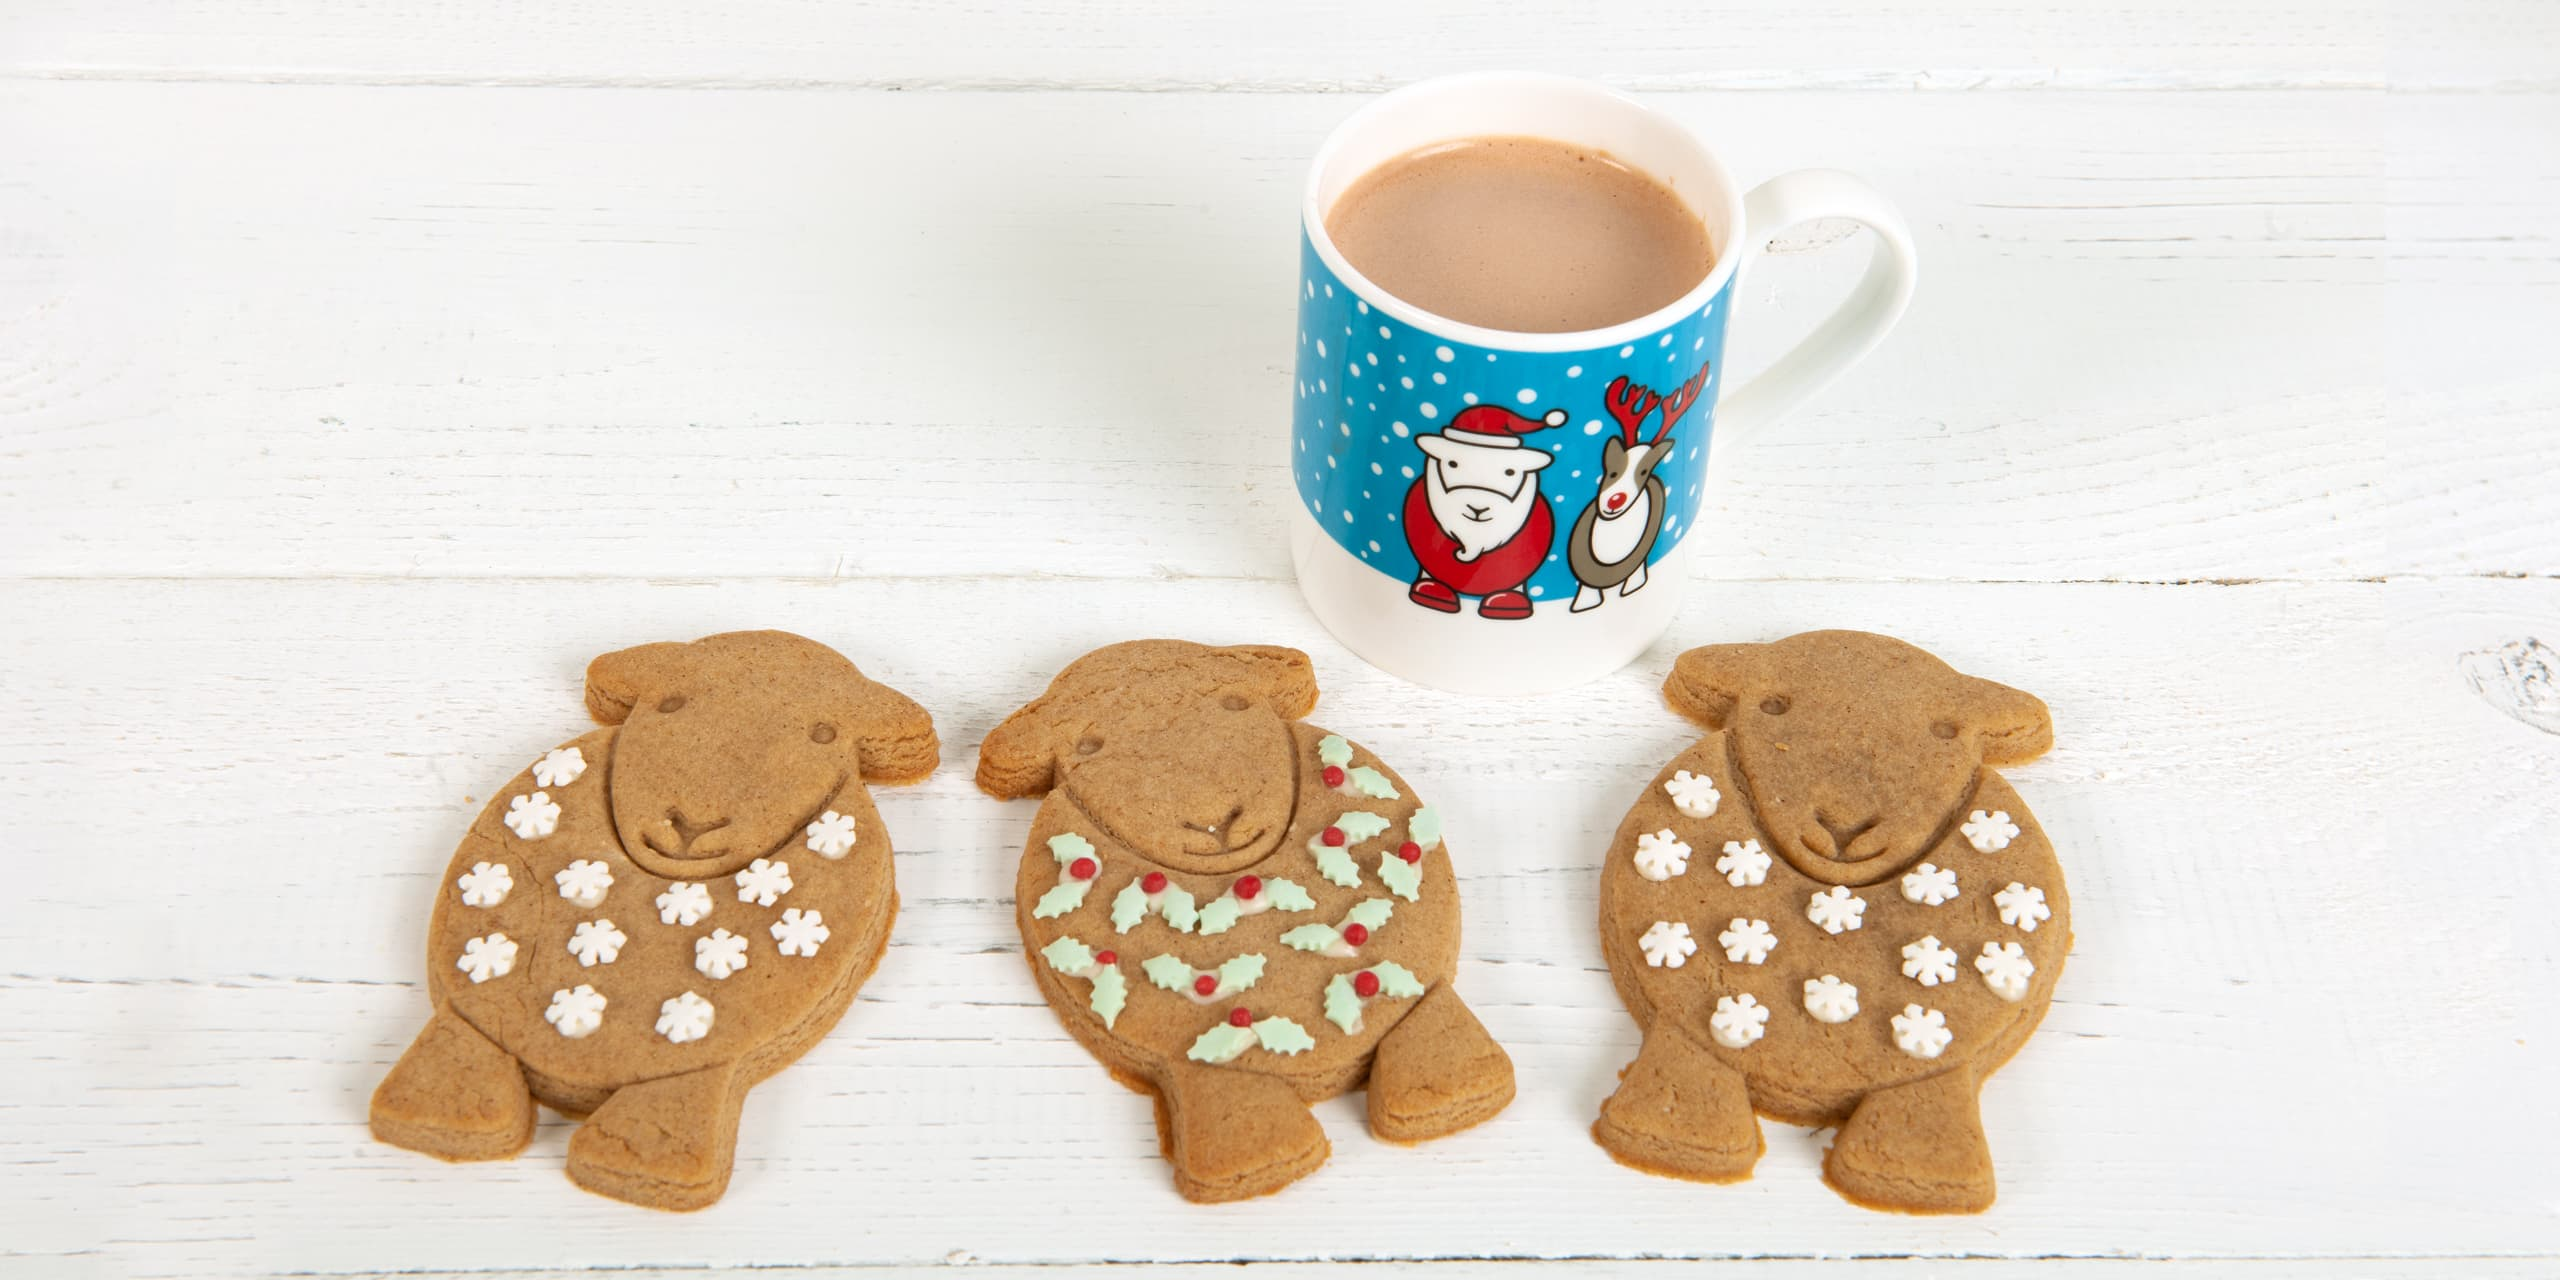 How To Make Herdy Yan Christmas Gingerbread The Herdy